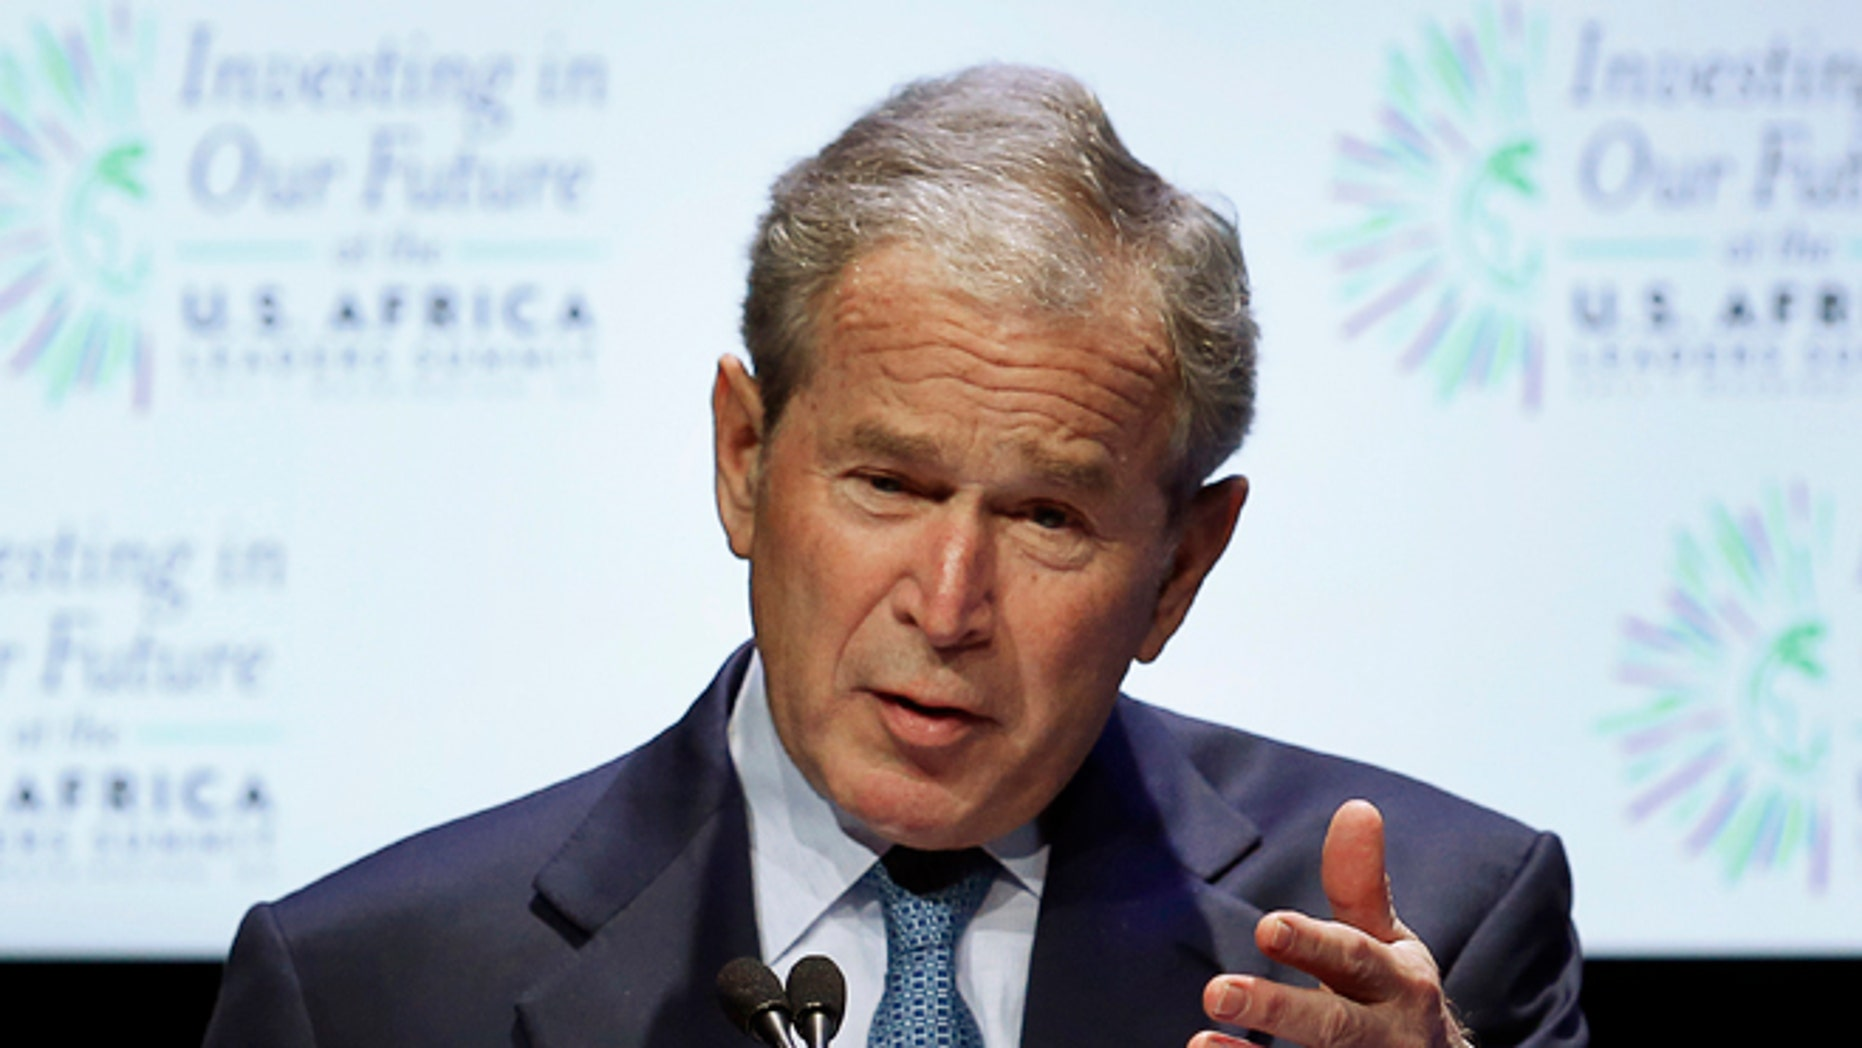 FILE: August 6, 2014:  Former President George W. Bush at the US-Africa Leaders Summit in Washington, D.C.